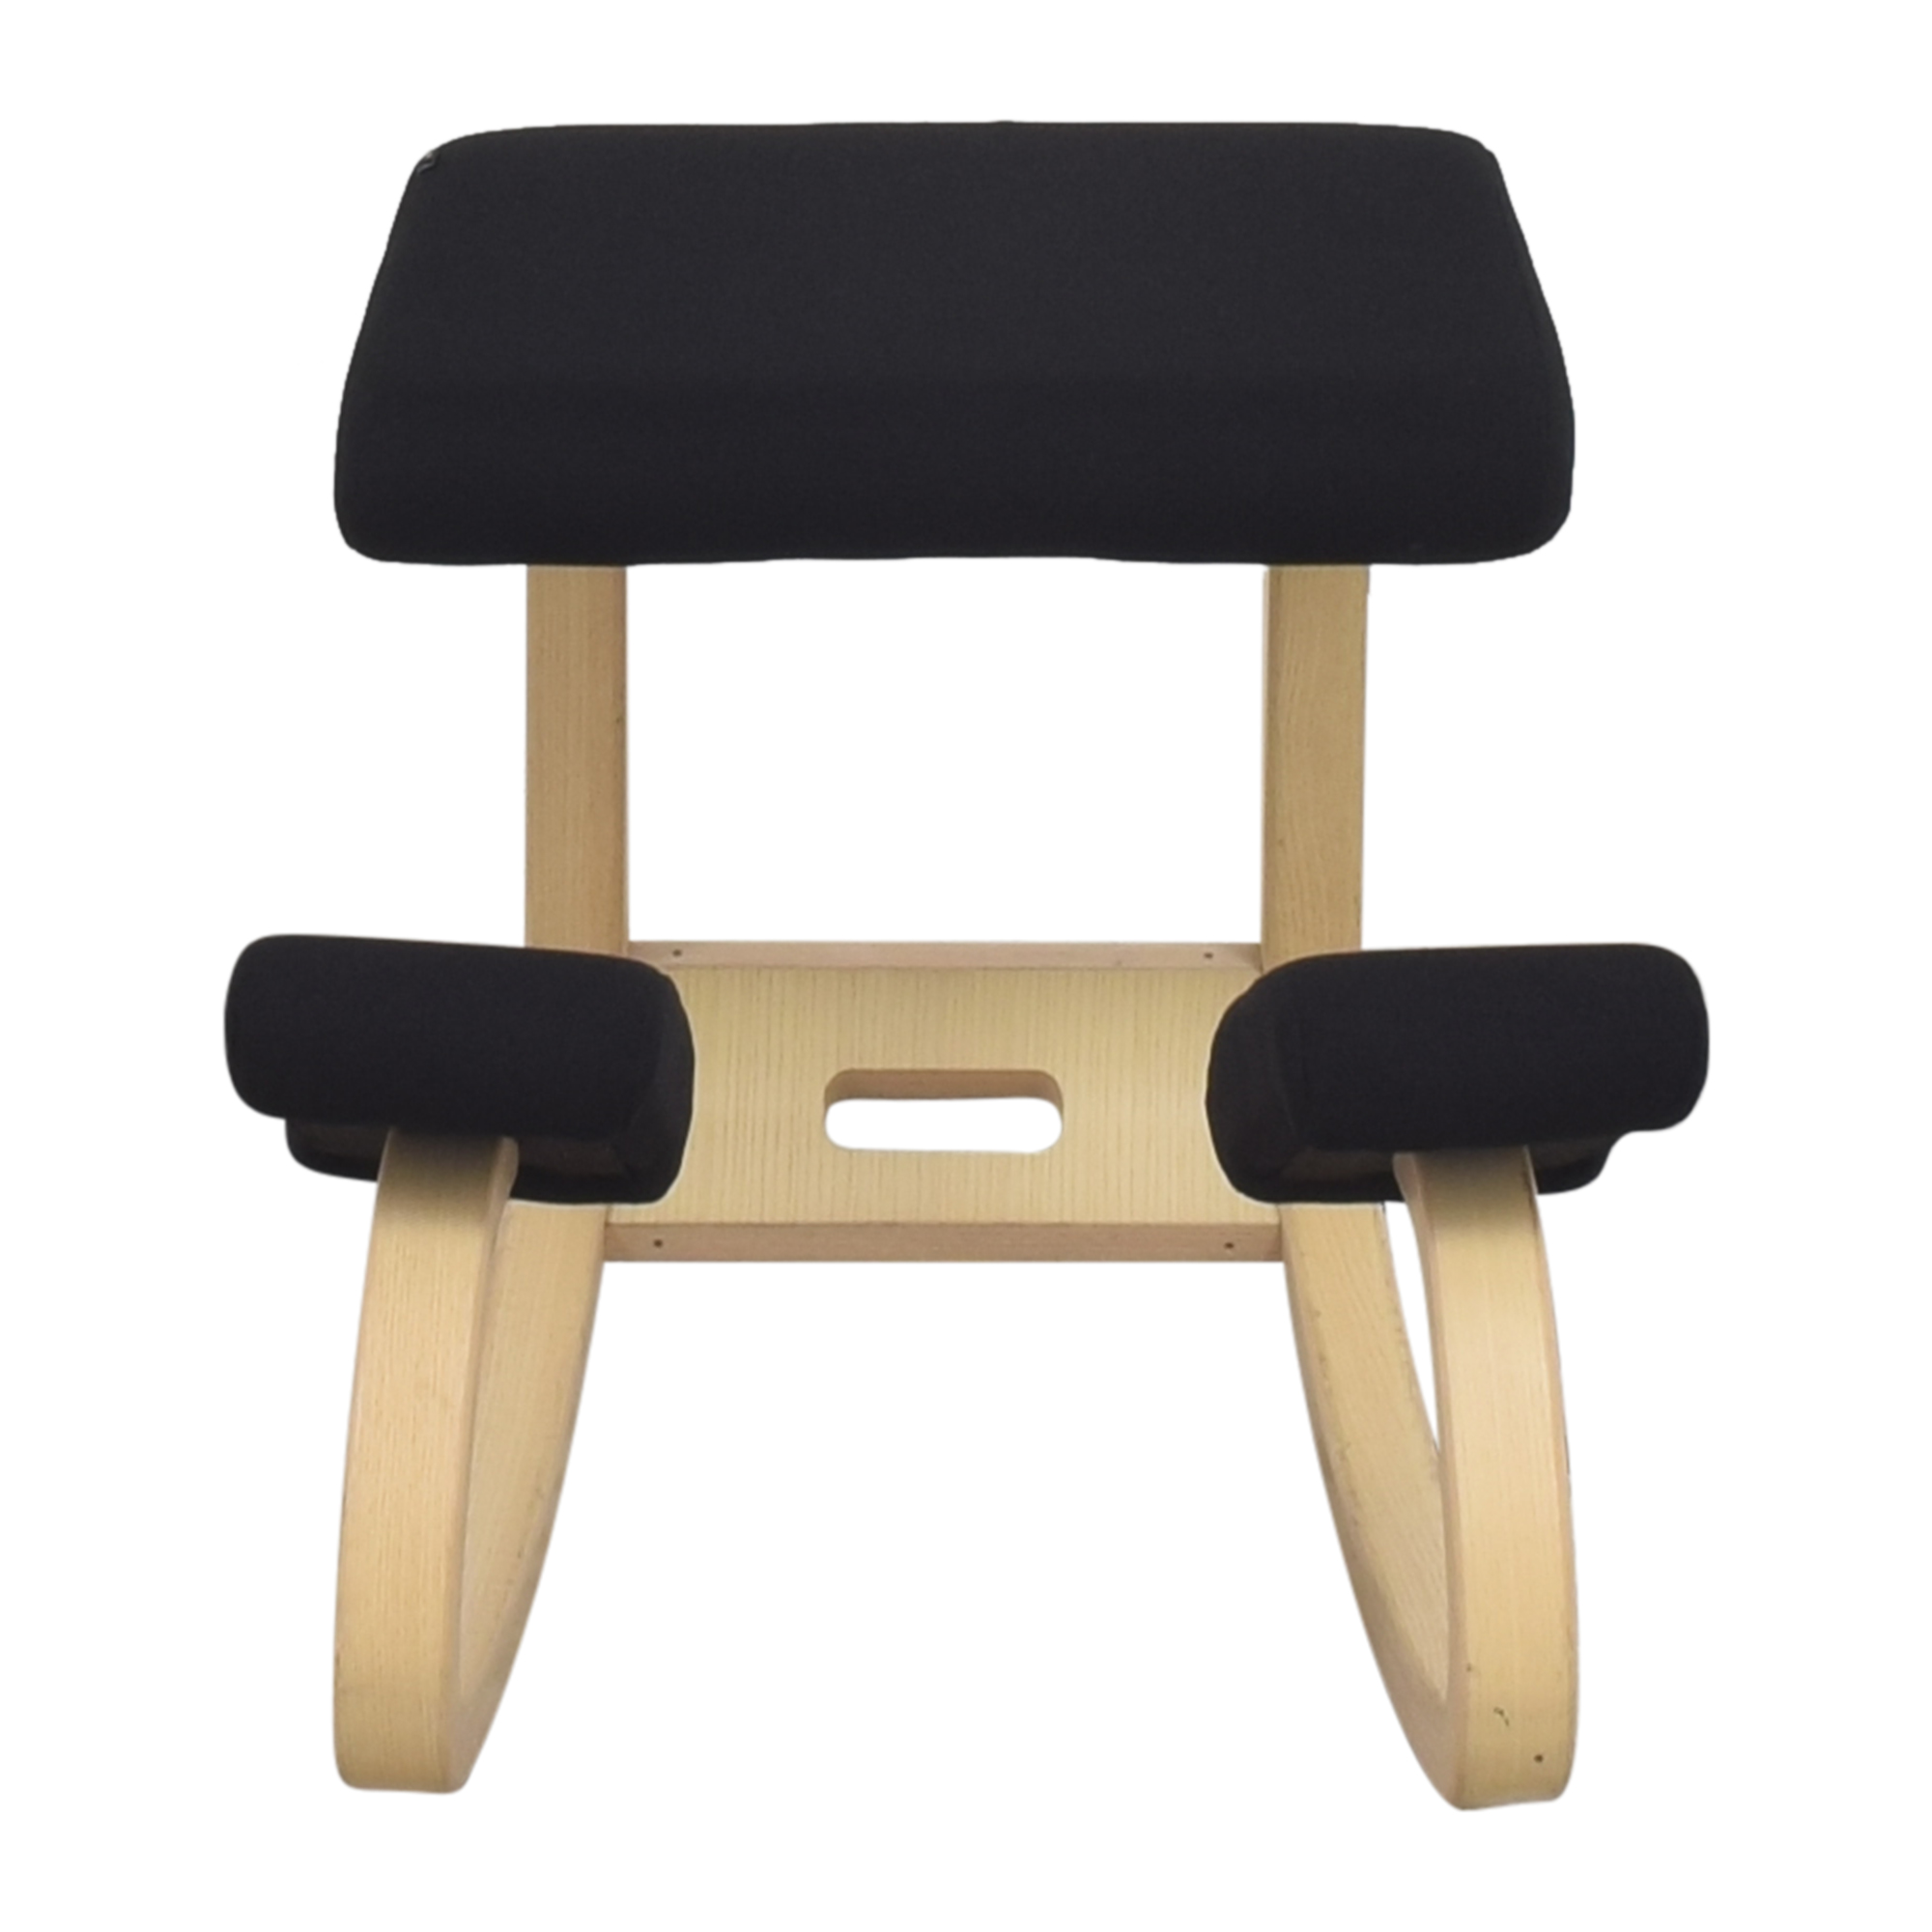 Varier Varier Variable balans Kneeling Chair price